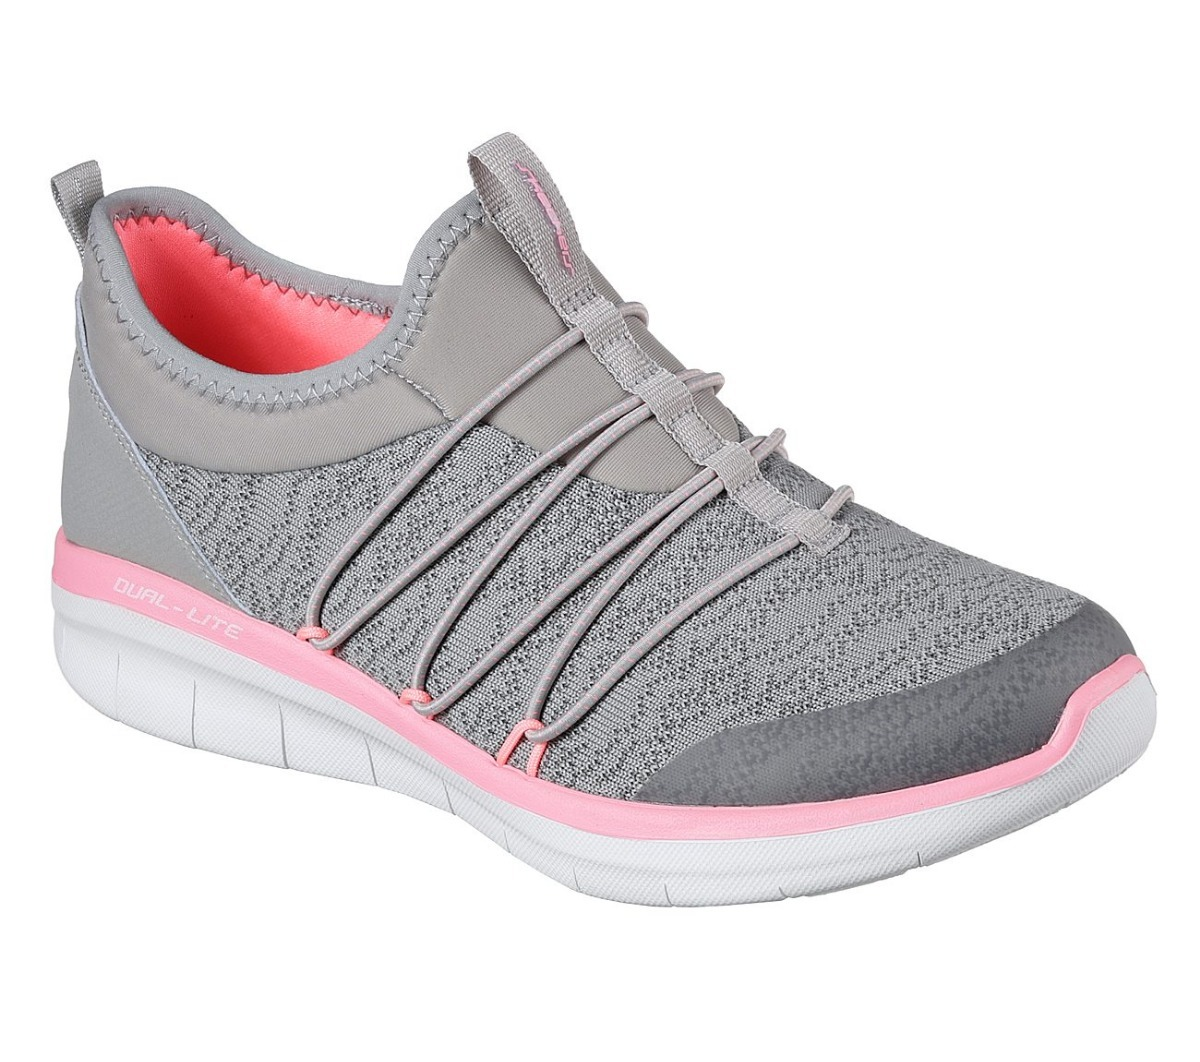 51dbc5551d zapatillas skechers synergy 2 w simply chic mujer deportivas. Cargando zoom.